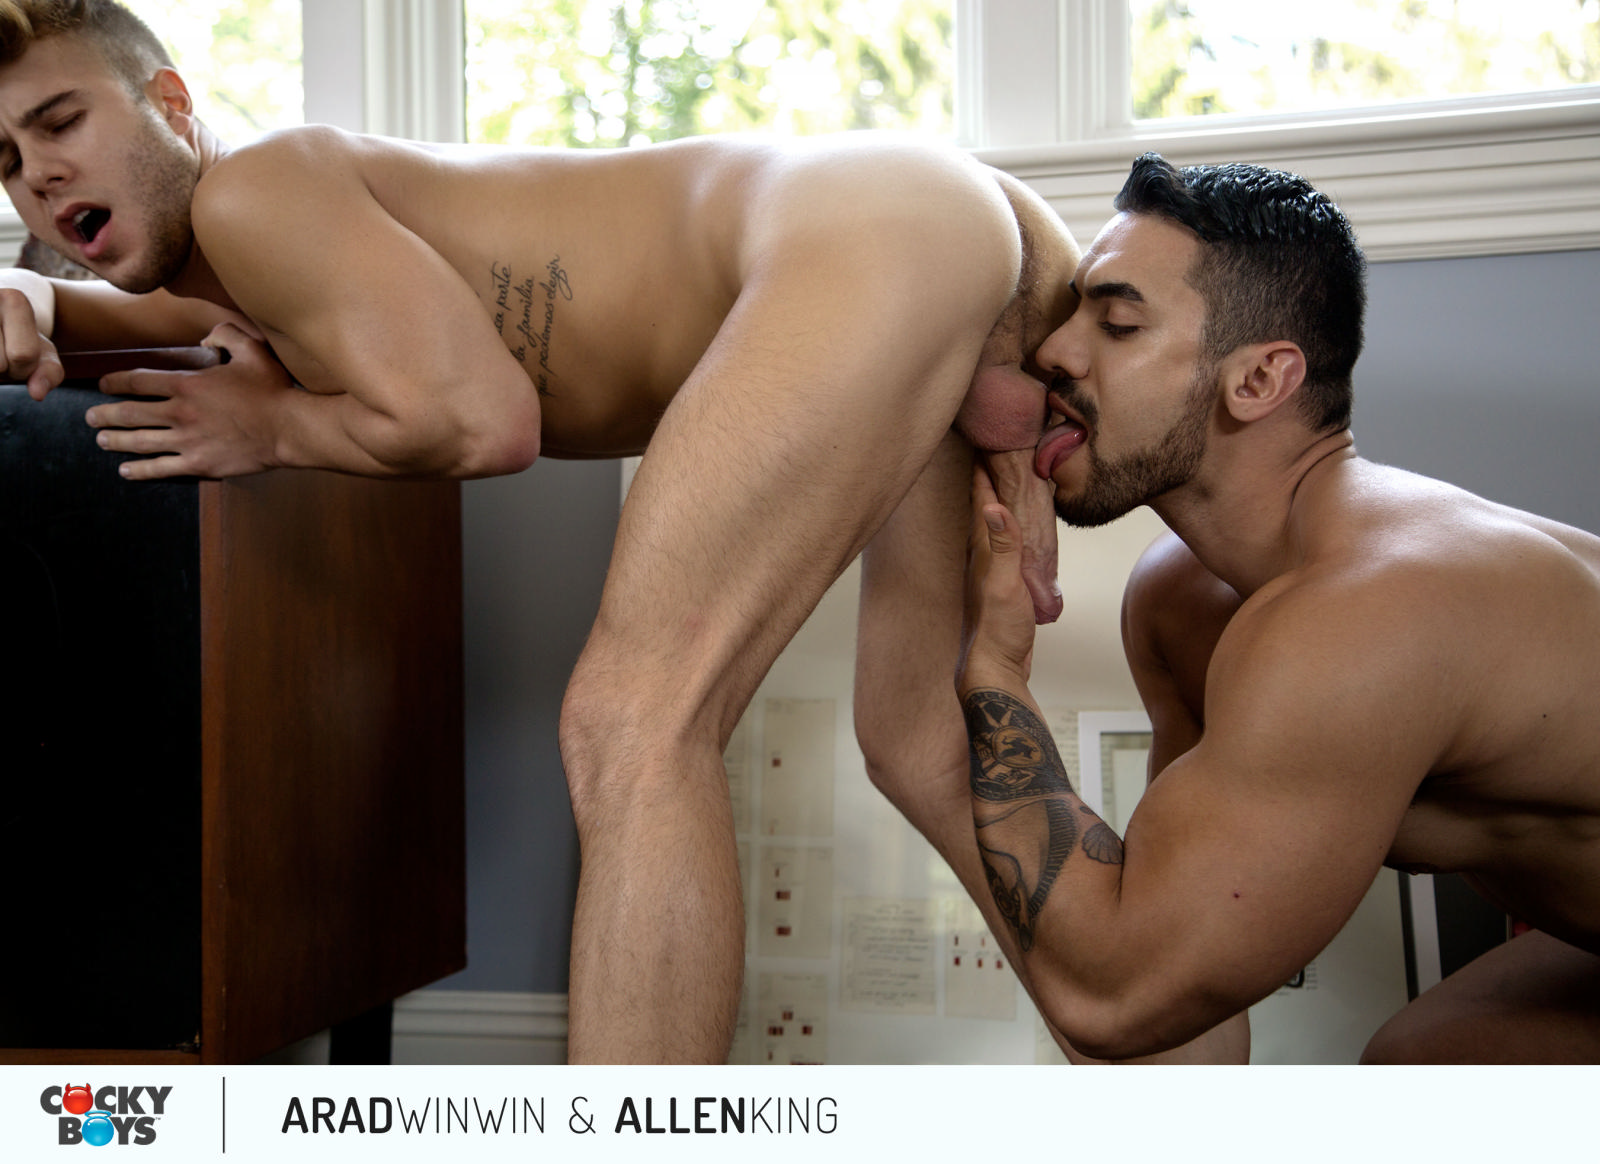 cruz gay love gay alex melcum allen king gay cruz